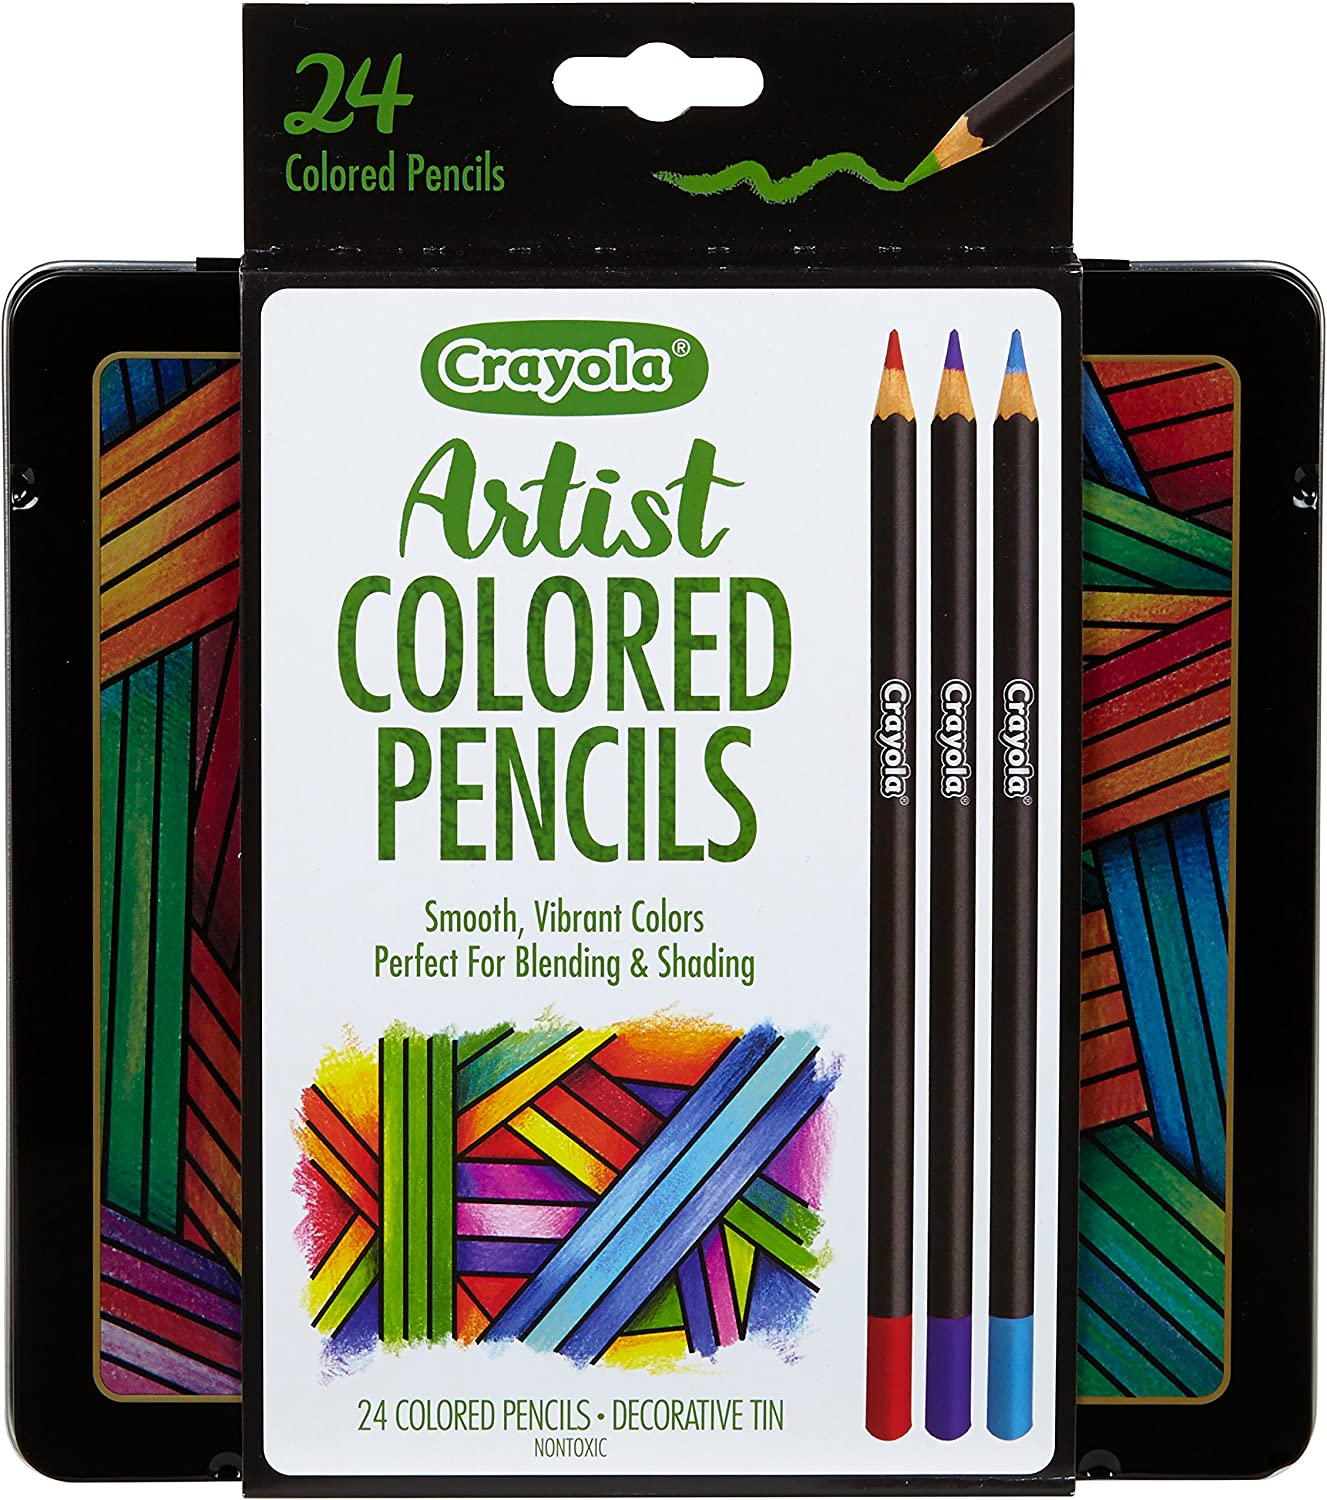 Amazon.com: Crayola Colored Pencils Set, Artist Colored Pencils ...